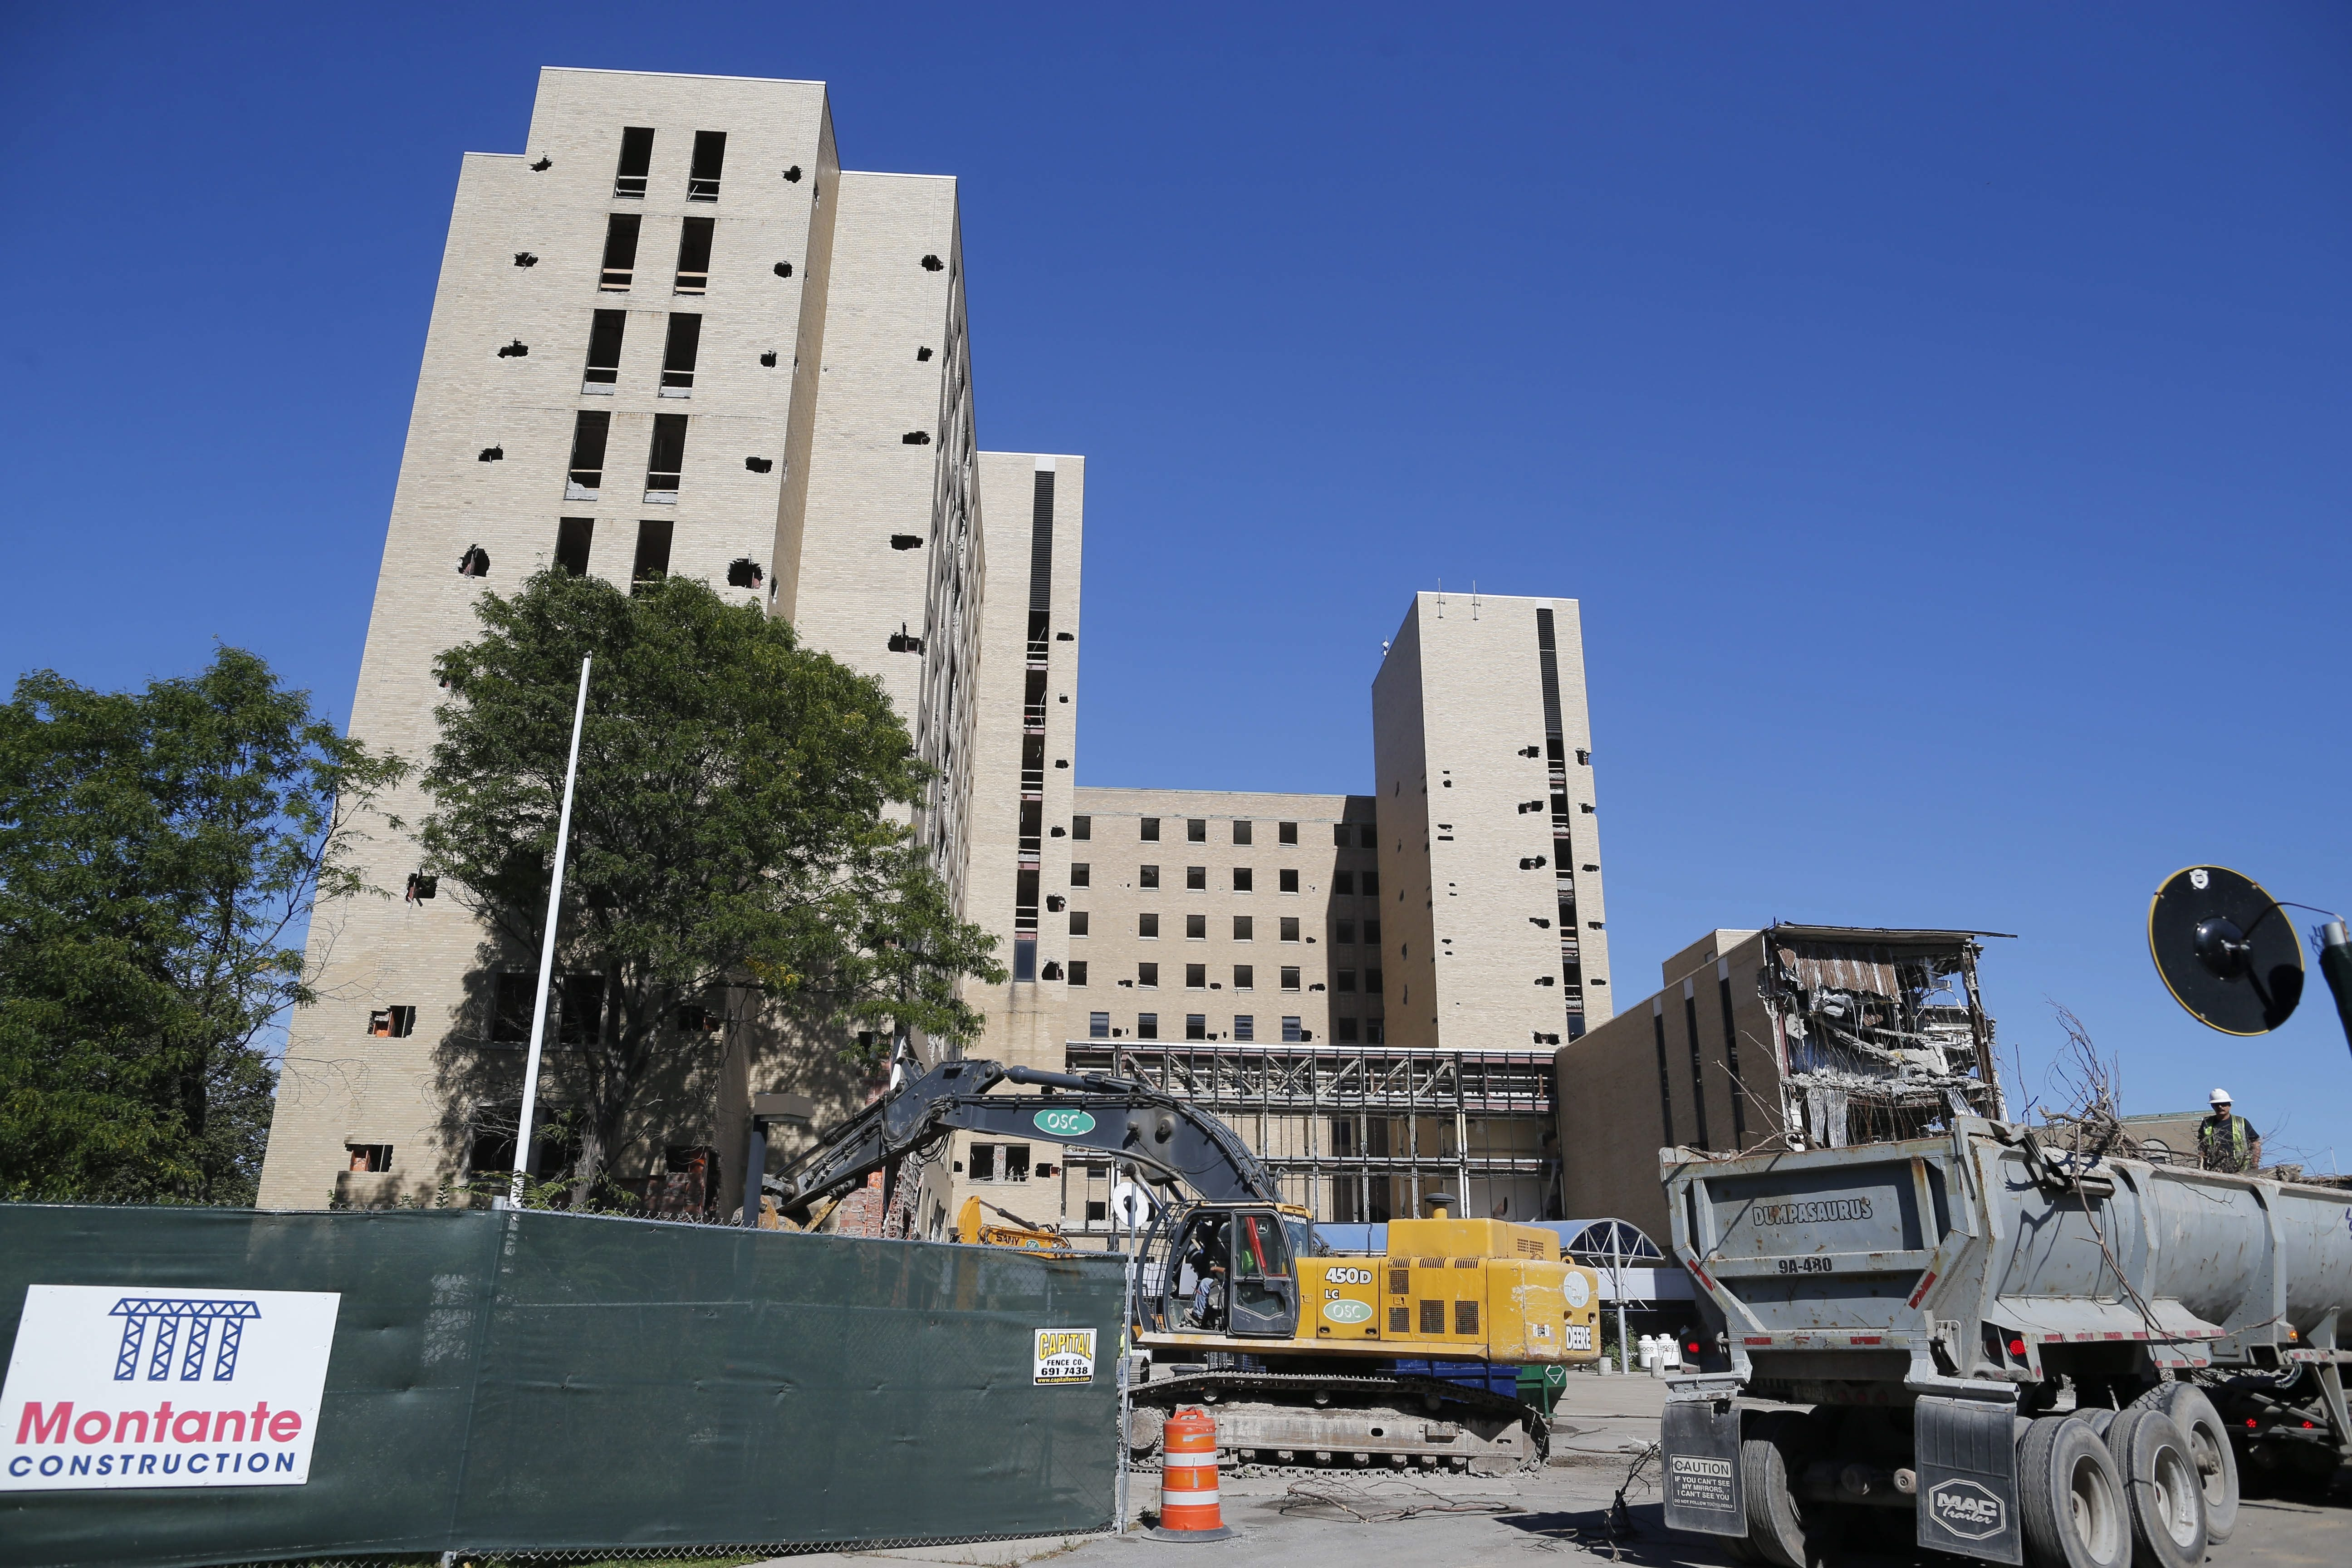 Demolition continues at the former Millard Fillmore Hospital at Gates Circle on Monday. The main tower will be imploded Oct. 3 to make way for a $150 million retail and residential development project.